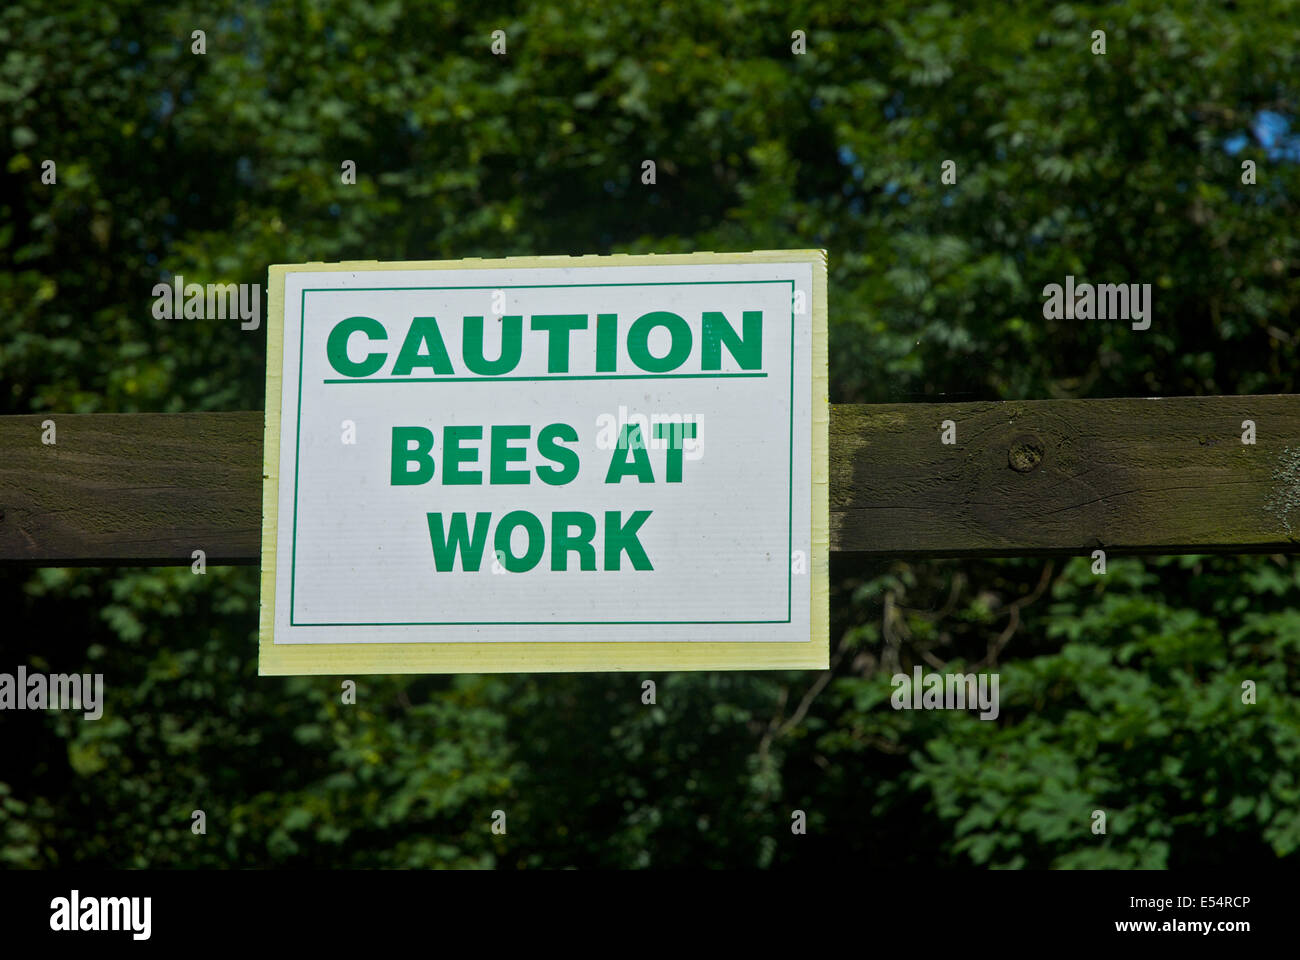 Sign: Caution, Bees at Work - Stock Image